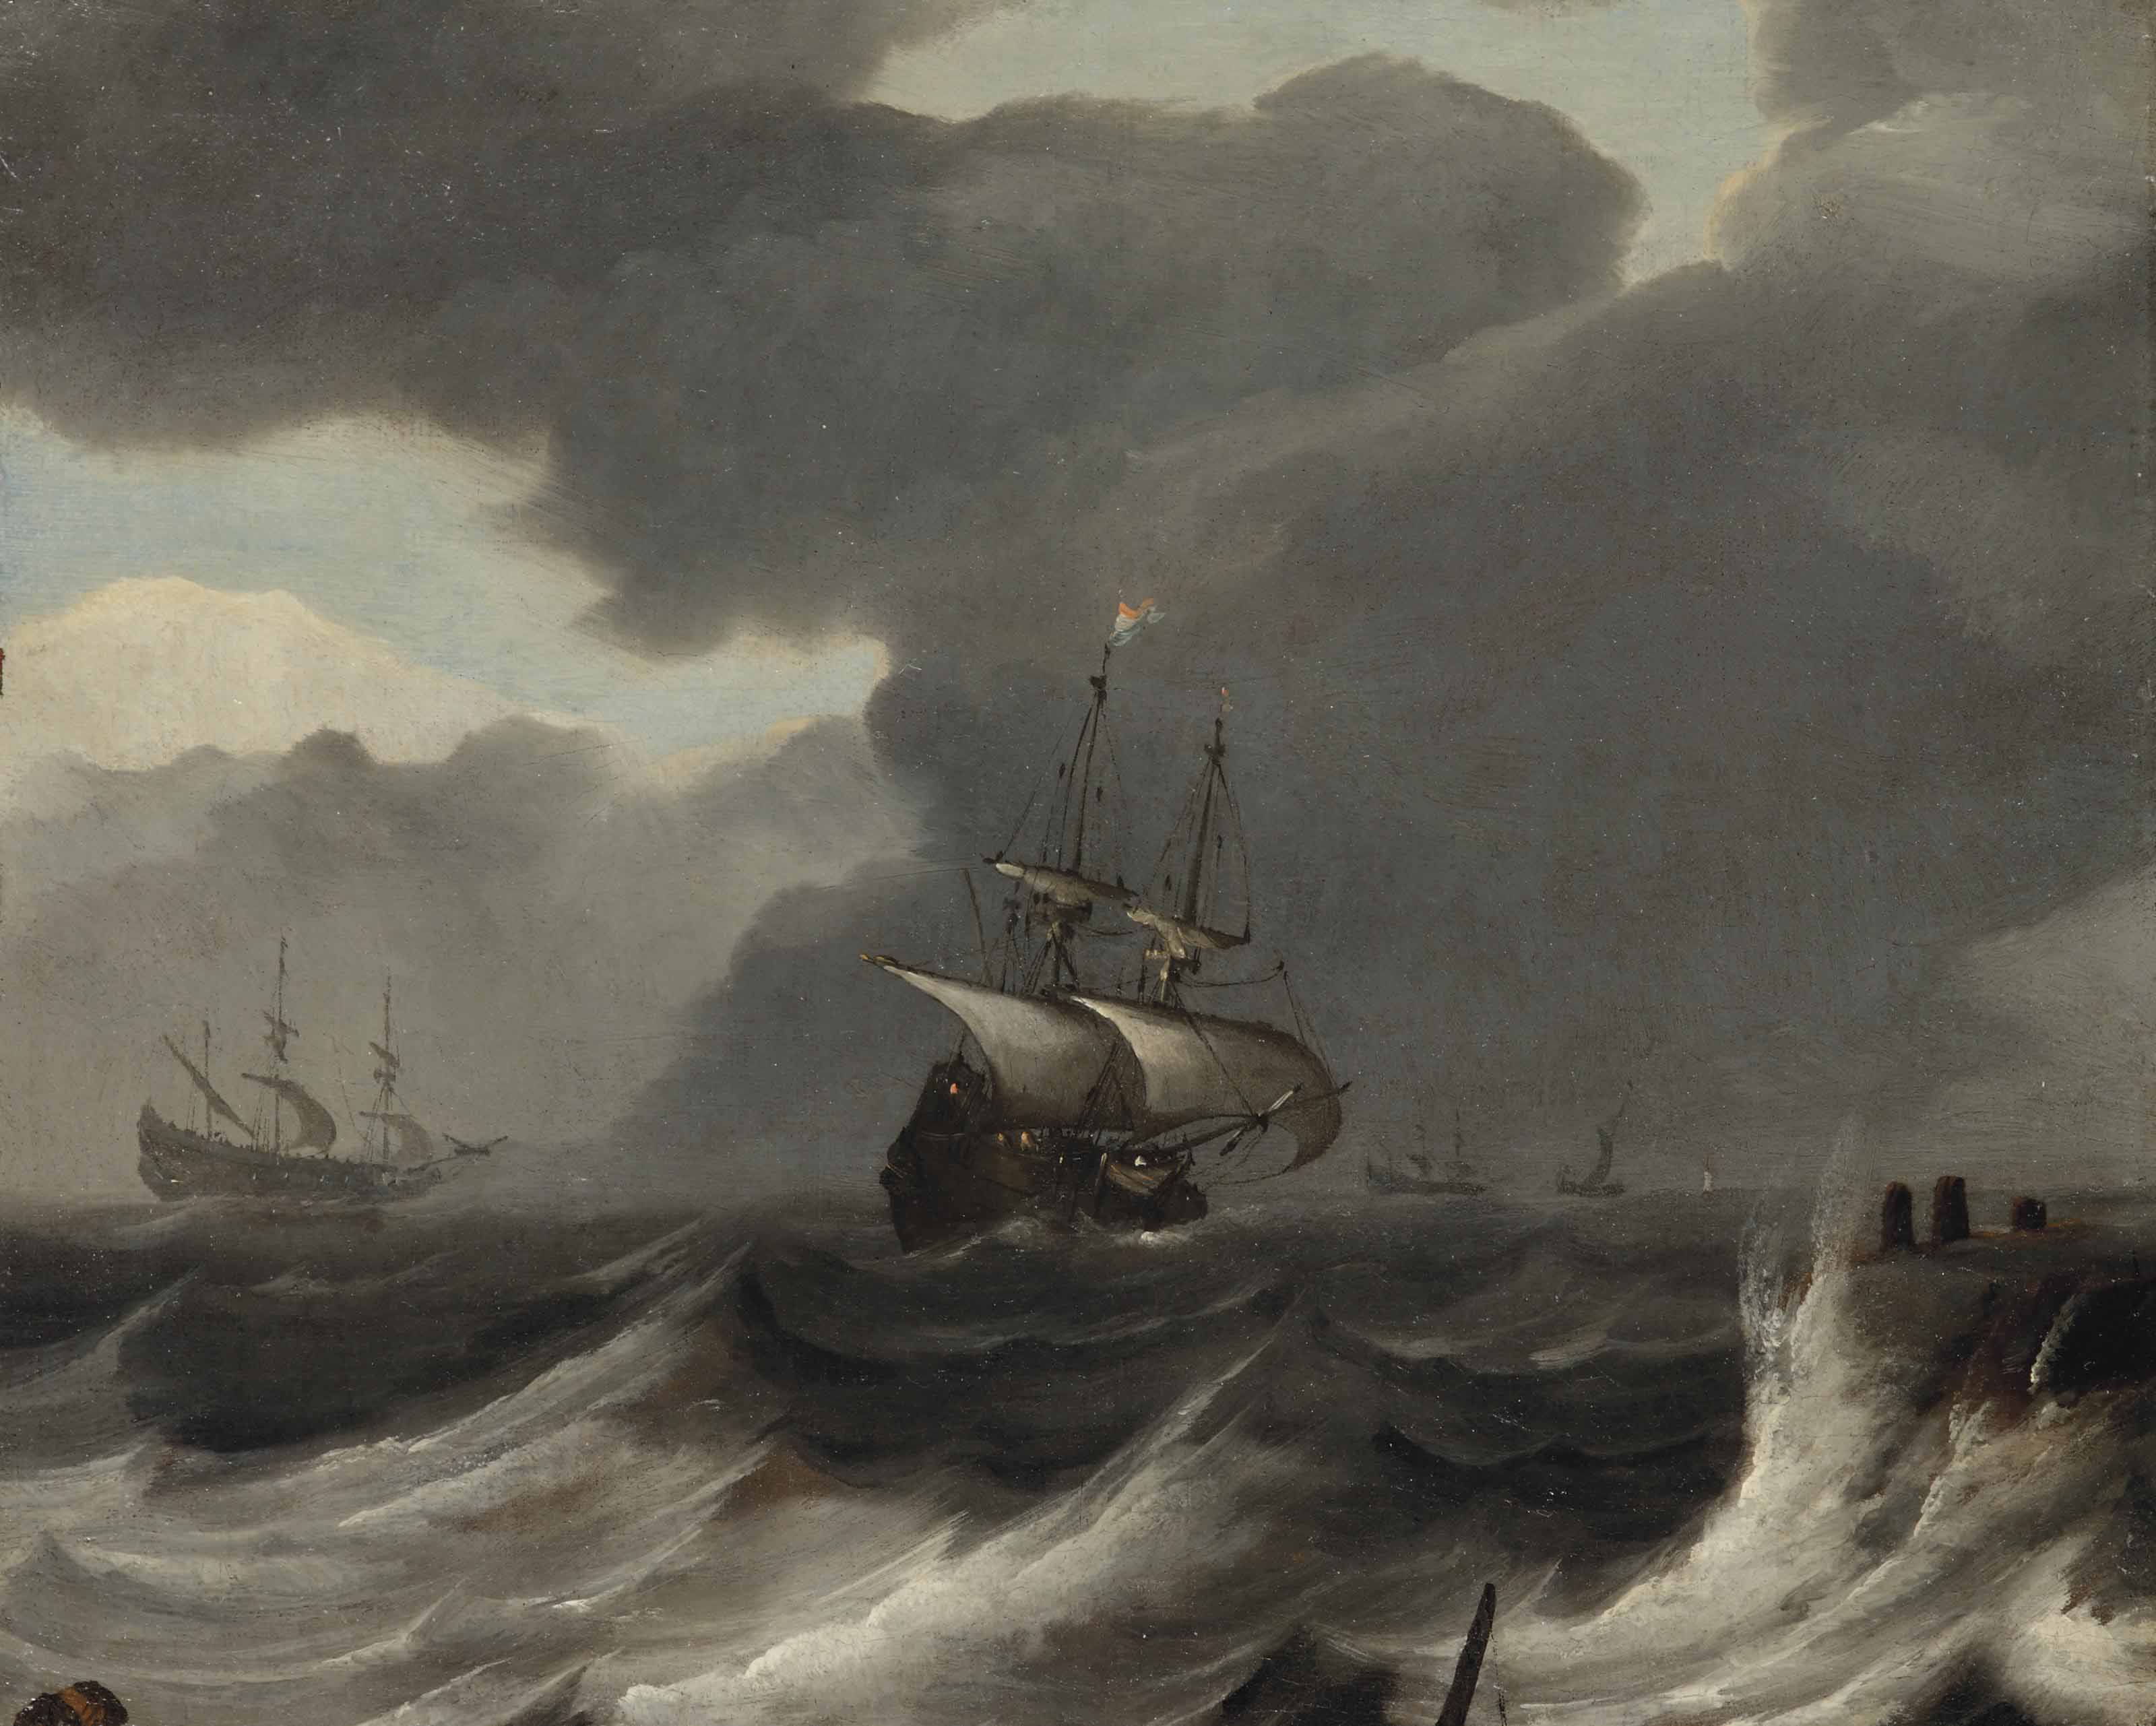 Shipping off the coast in a gale